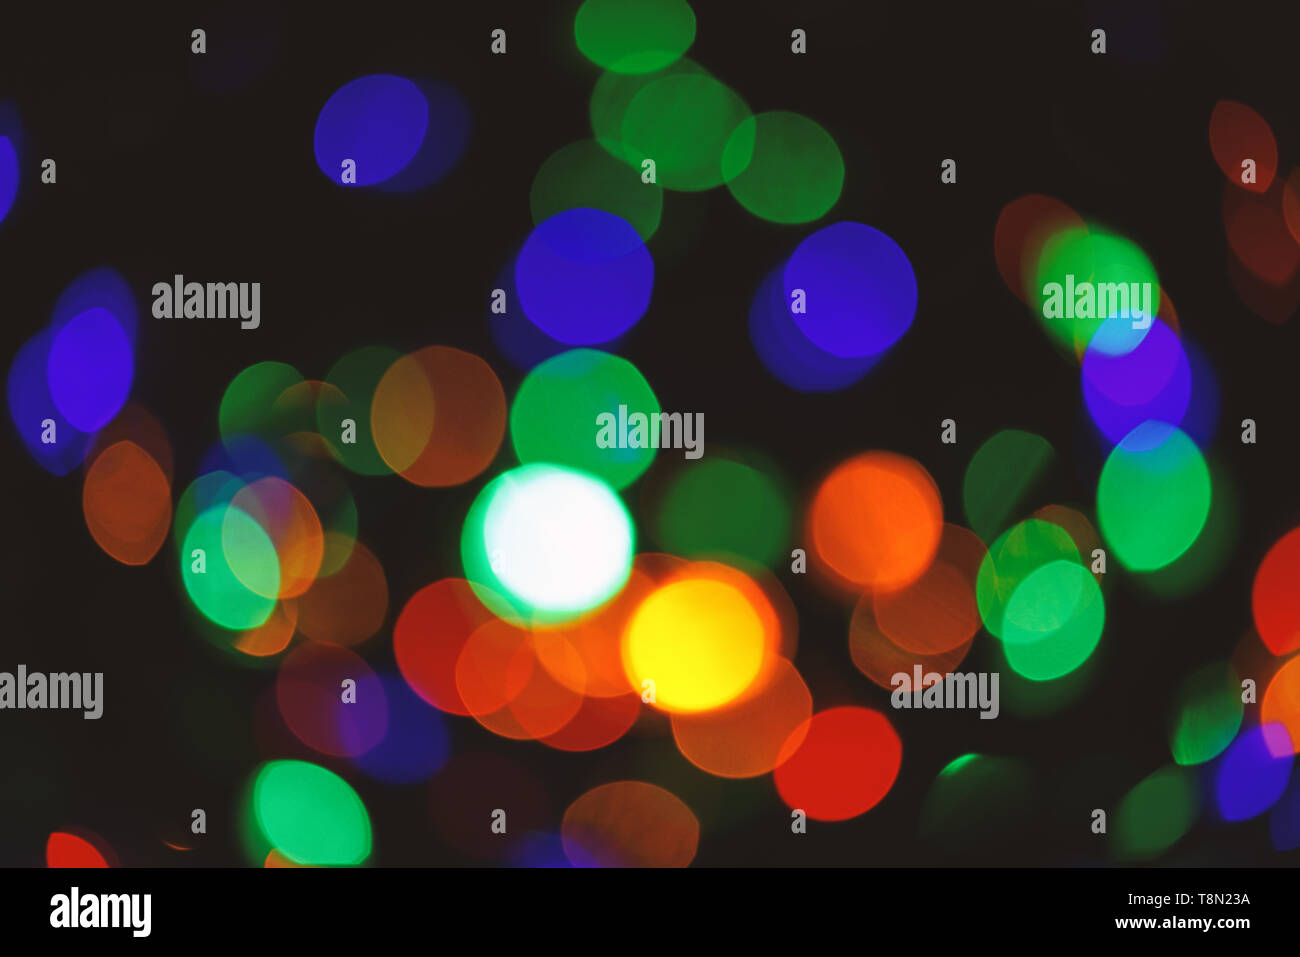 Christmas decorations concept. Defocused light of colorful garland. Festive backdrop with colorful lights. Bright and festive atmosphere of coming holiday. Abstract colorful bokeh background. Stock Photo